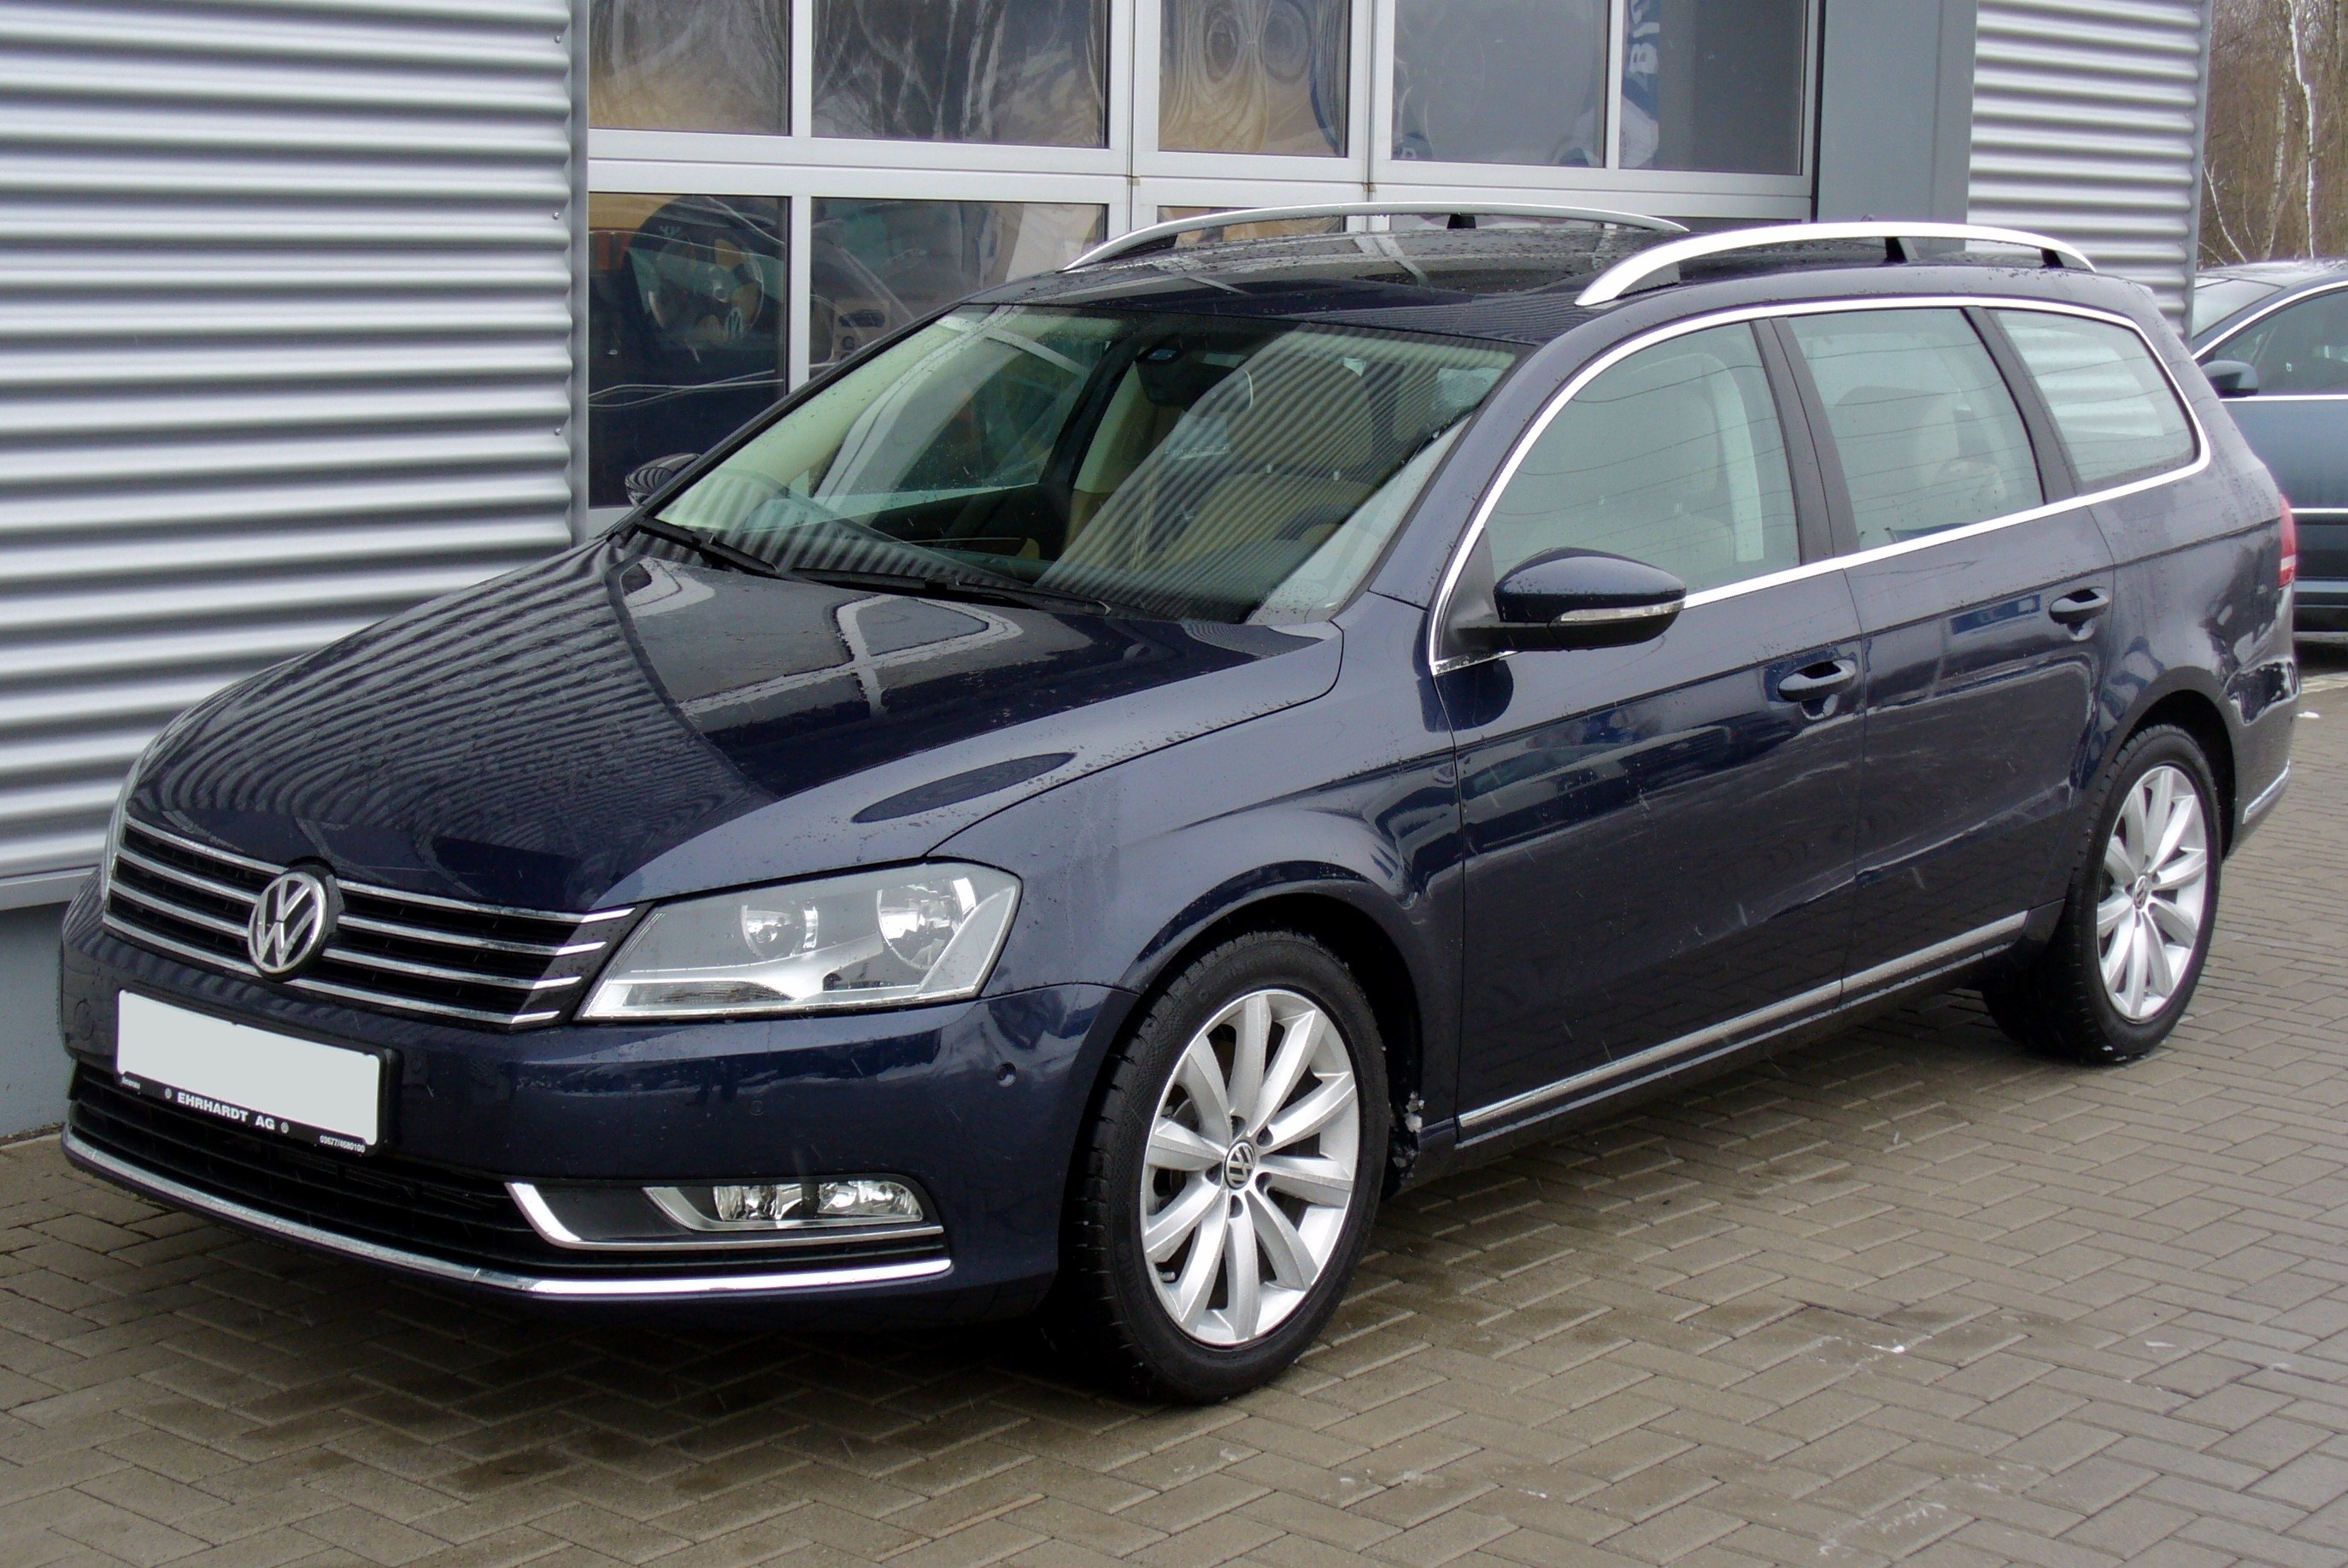 file vw passat variant b7 1 8 tsi comfortline nightblue jpg wikimedia commons. Black Bedroom Furniture Sets. Home Design Ideas